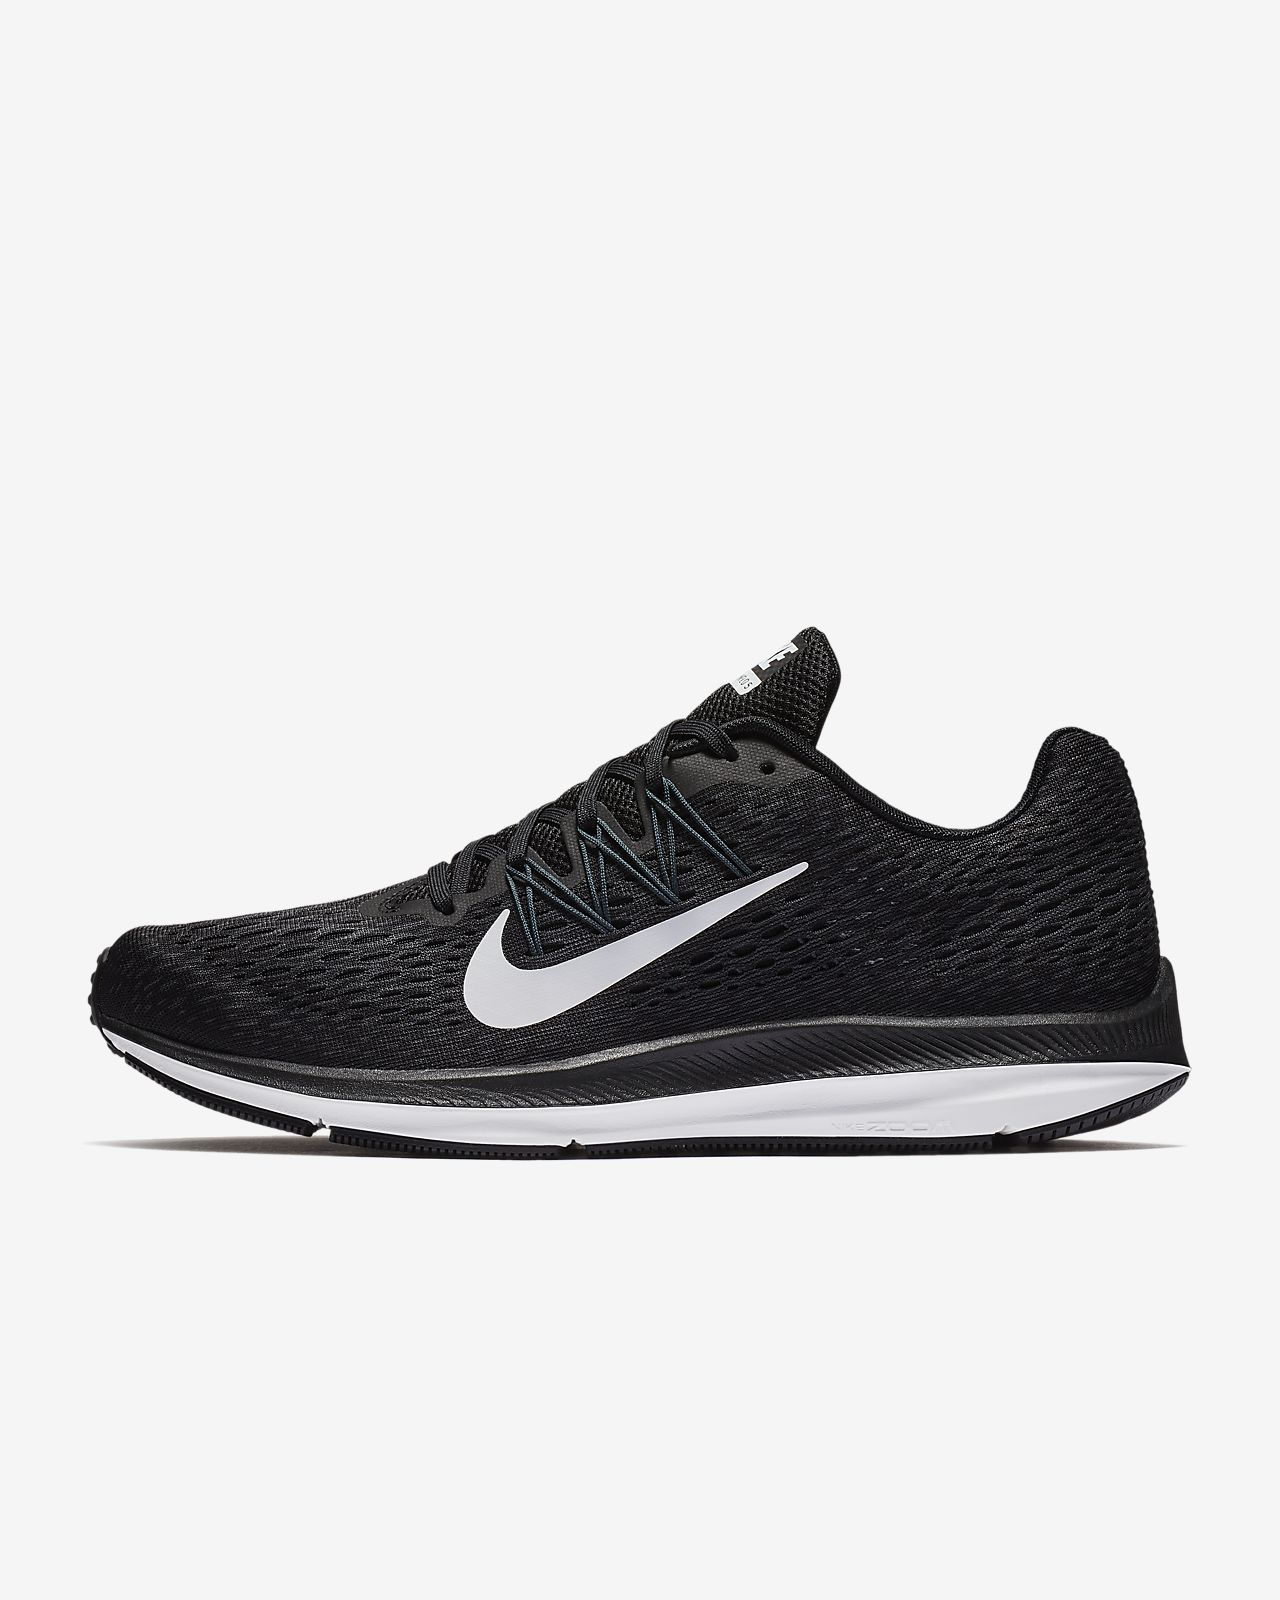 684e662d903f coupon for nike air zoom winflo 5 mens running shoe 9f51e 0832c